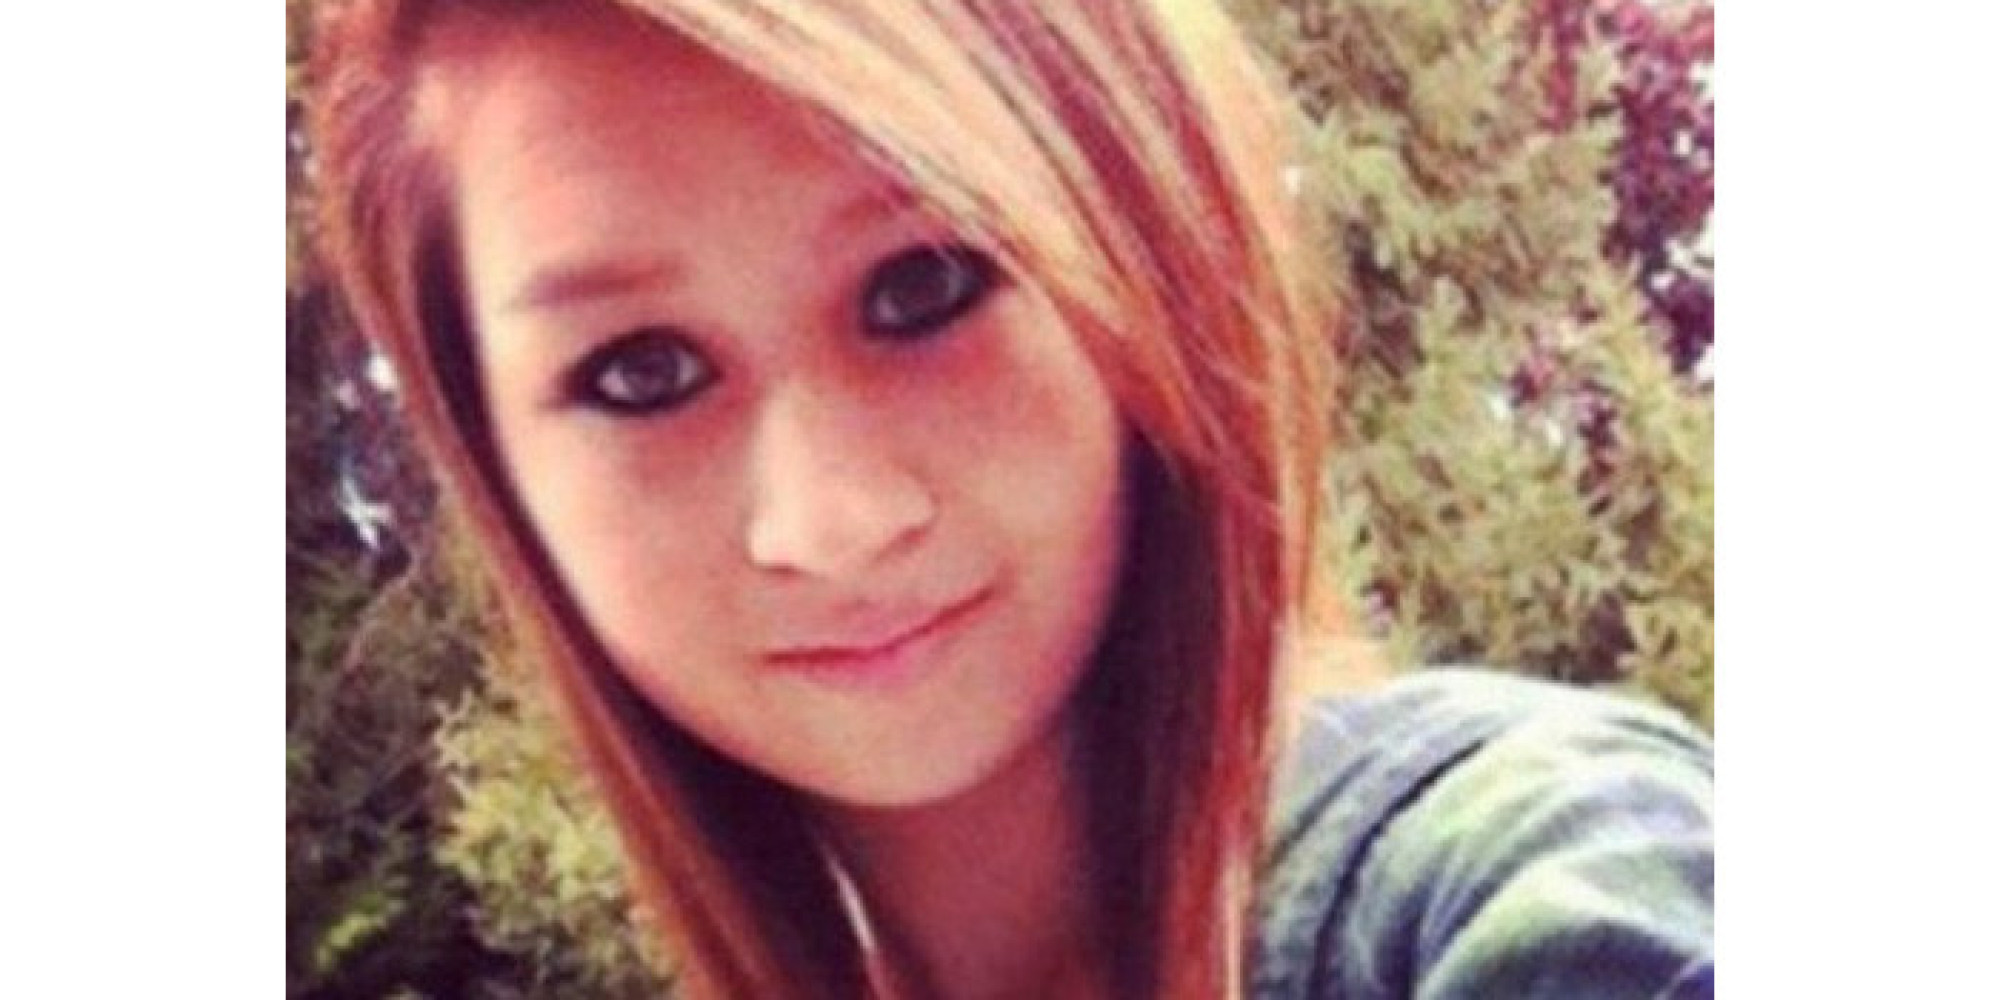 amanda todd 610 records for amanda todd find amanda todd's phone, address, and email on spokeo, the leading online directory.